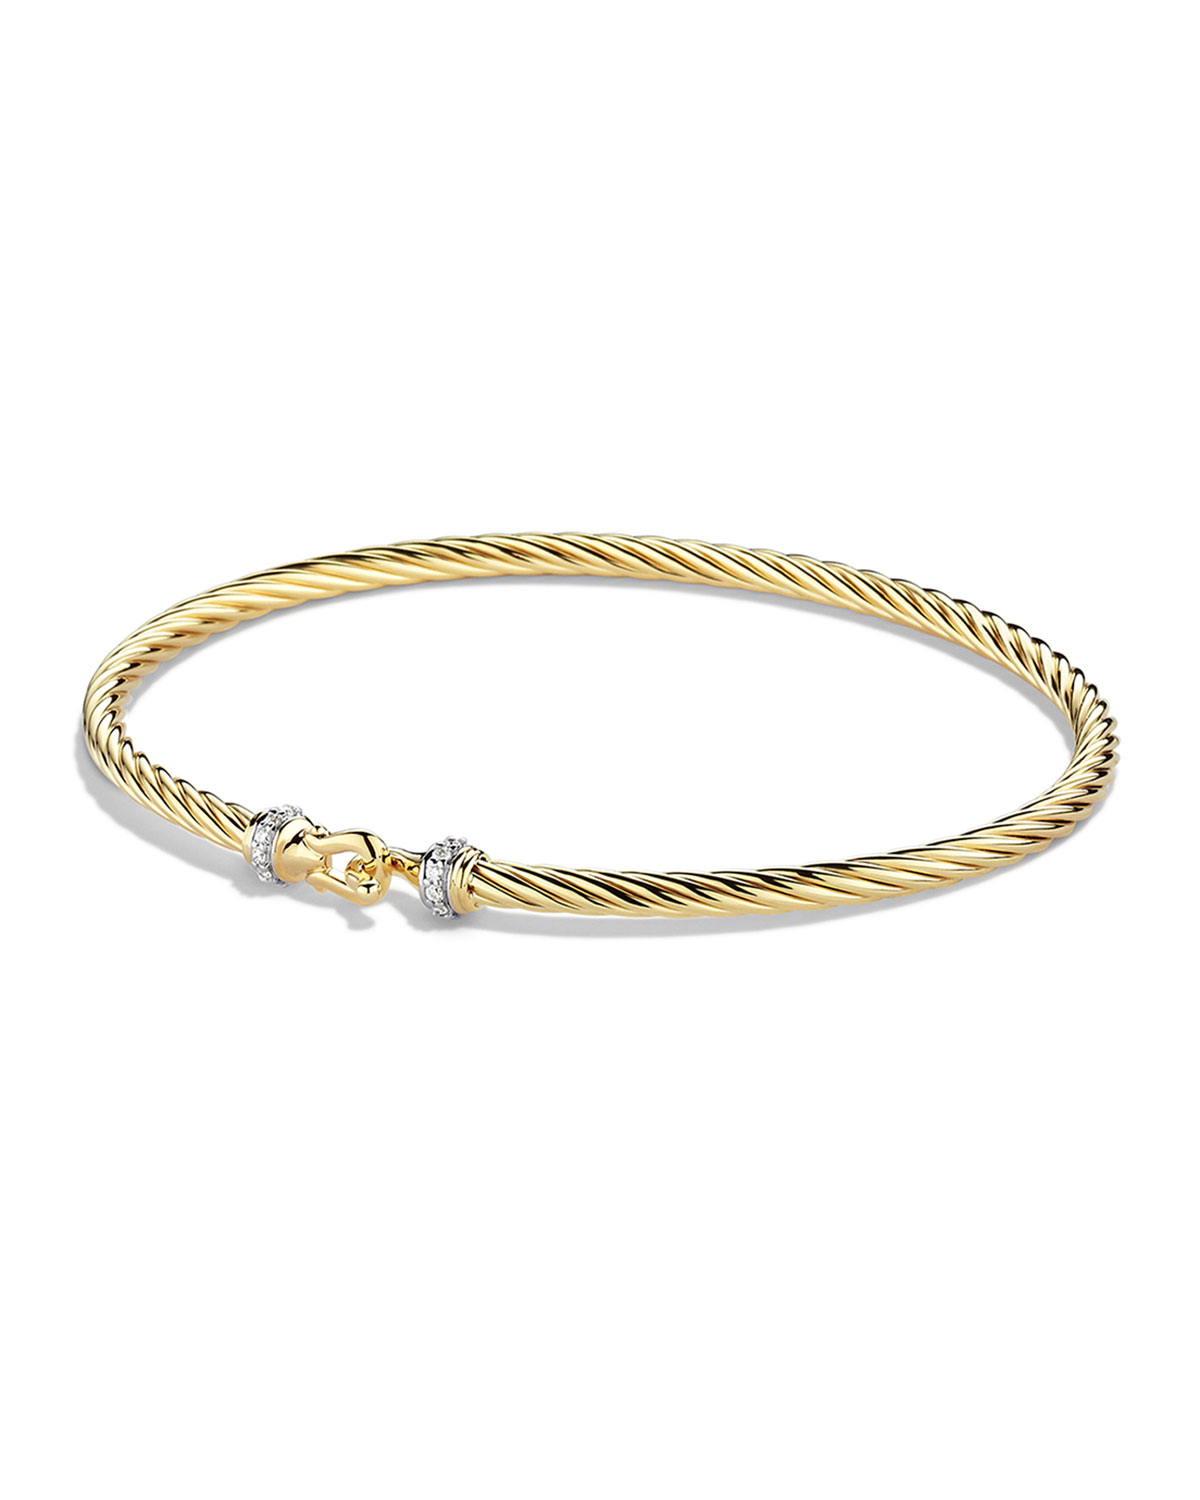 Cable Collectibles Buckle Bracelet With Diamonds In Gold by David Yurman